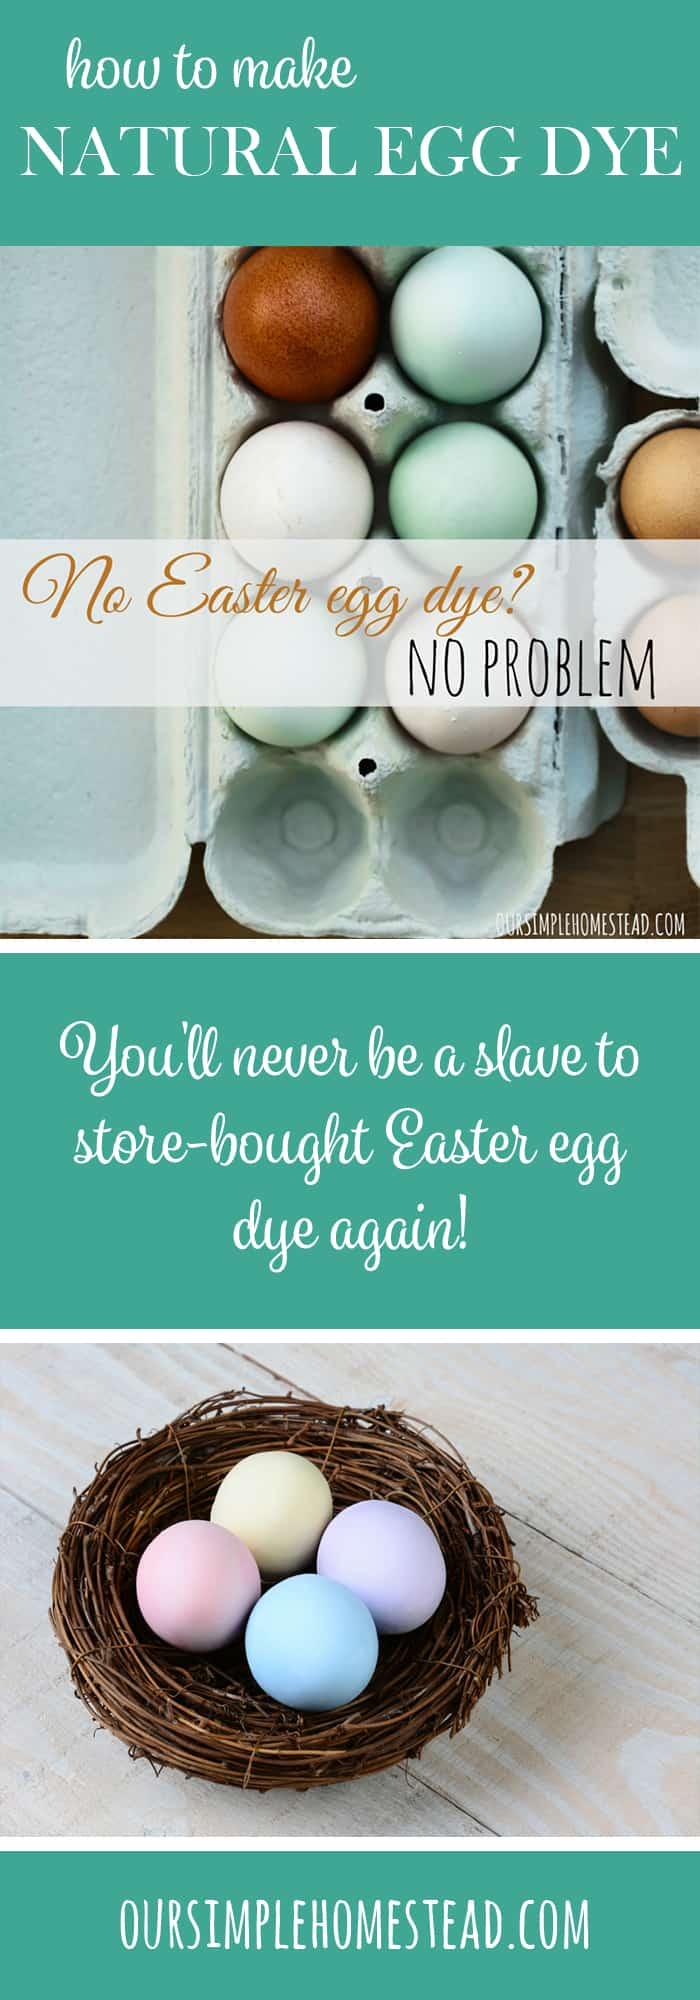 How to dye eggs naturally?